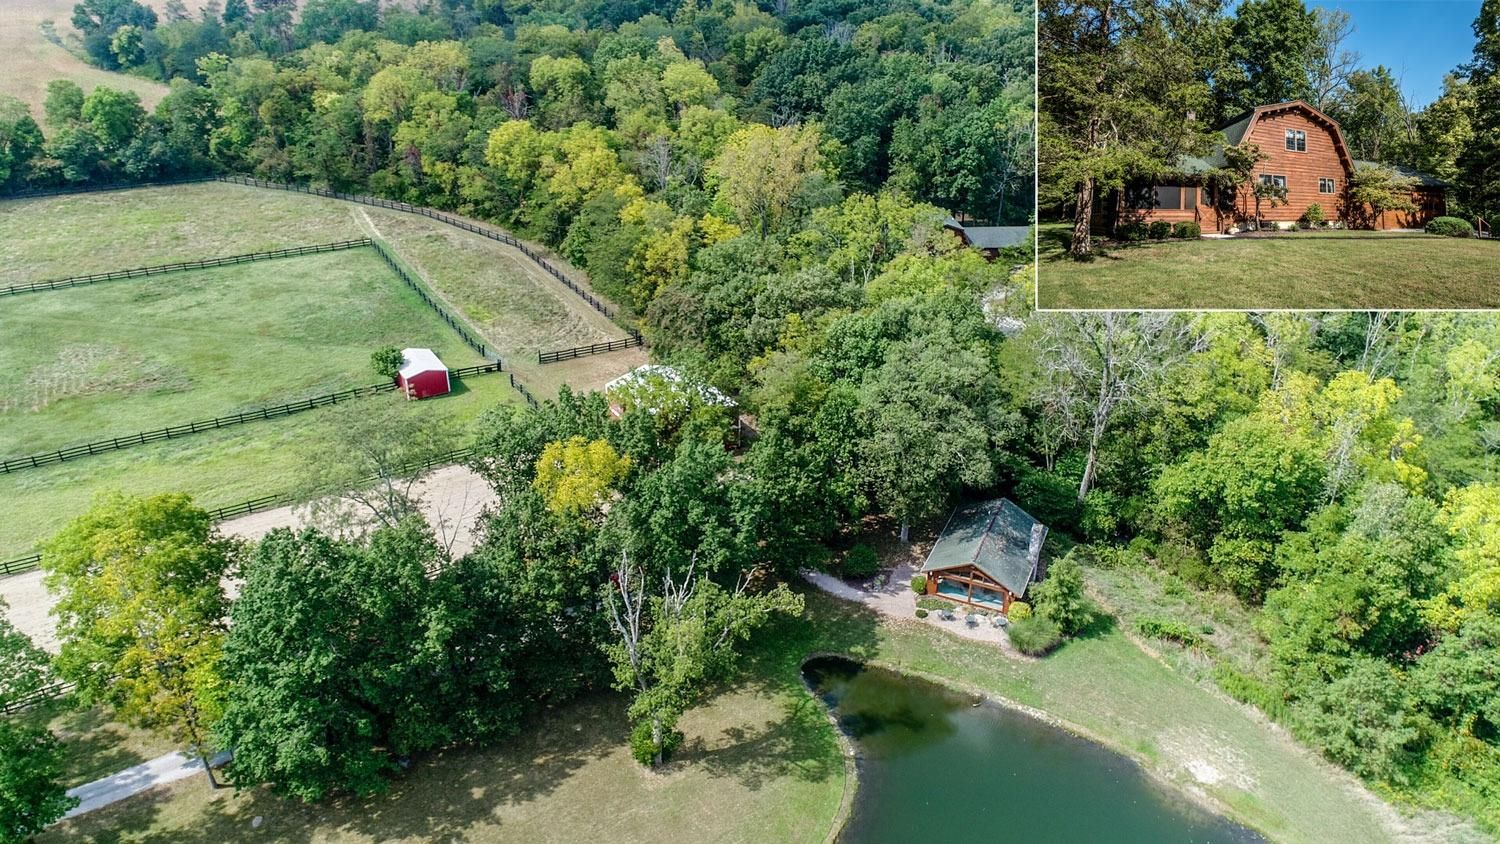 Property for sale at 2820 St Rt 63, Turtle Creek Twp,  Ohio 45036